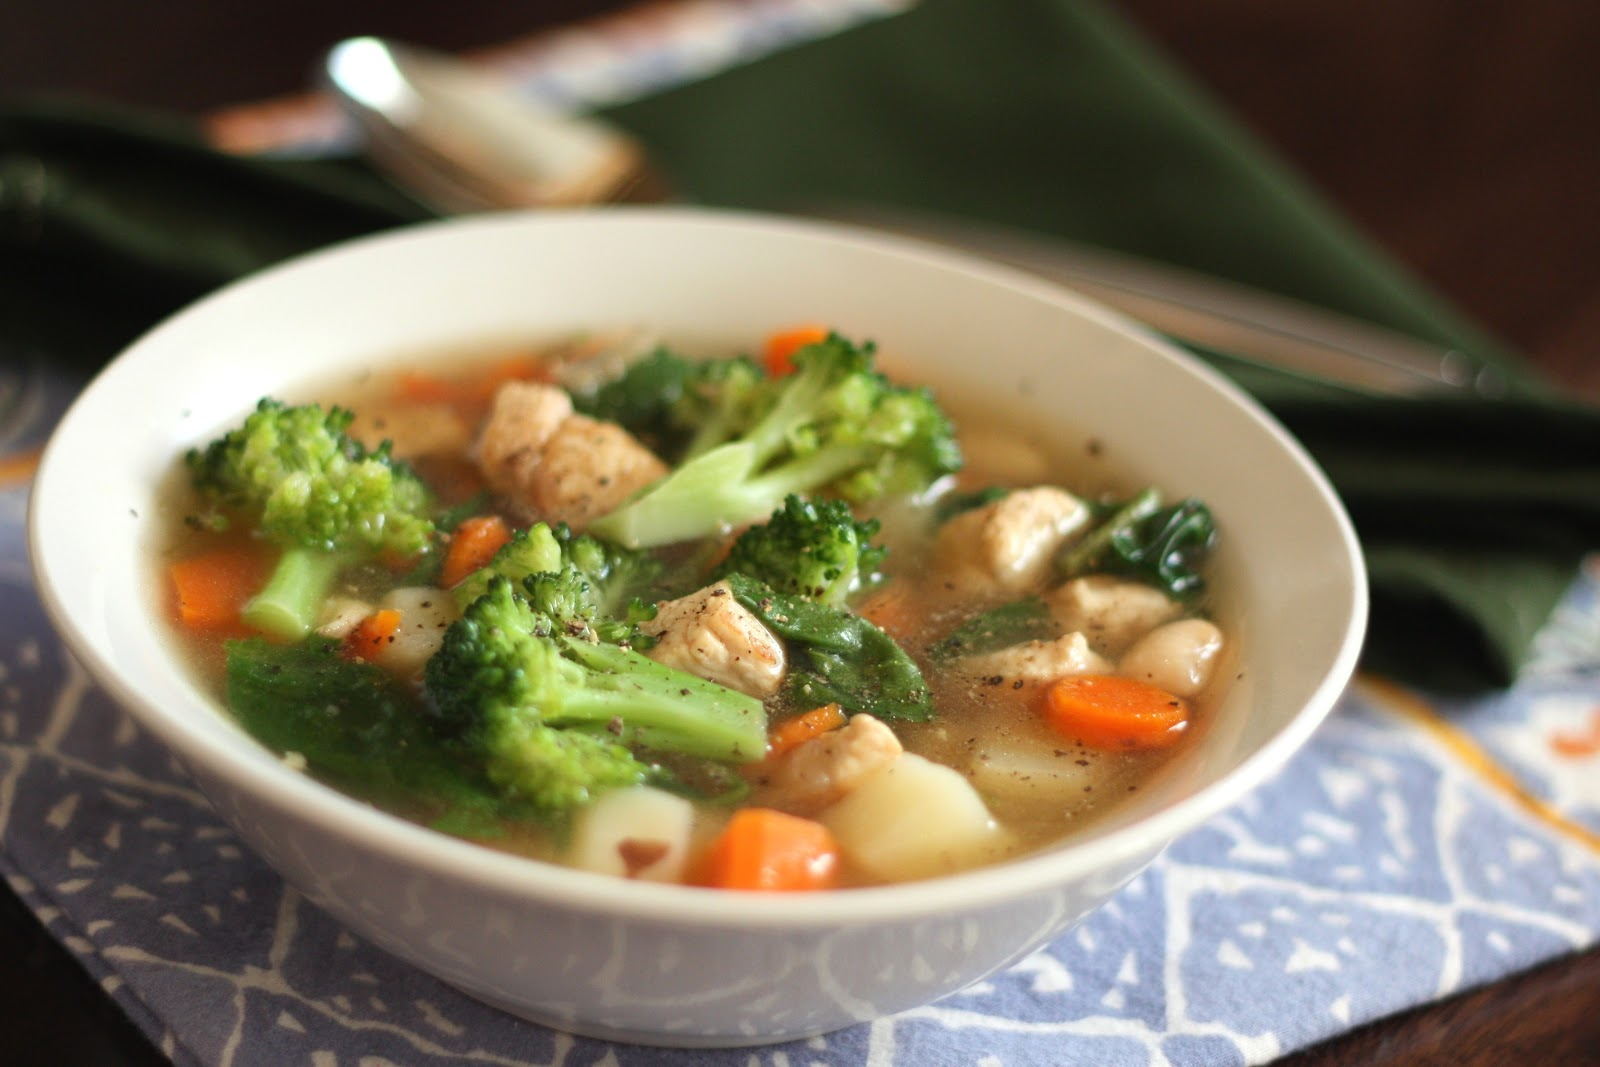 Barefeet In The Kitchen: Chicken Vegetable Soup with Red Potatoes